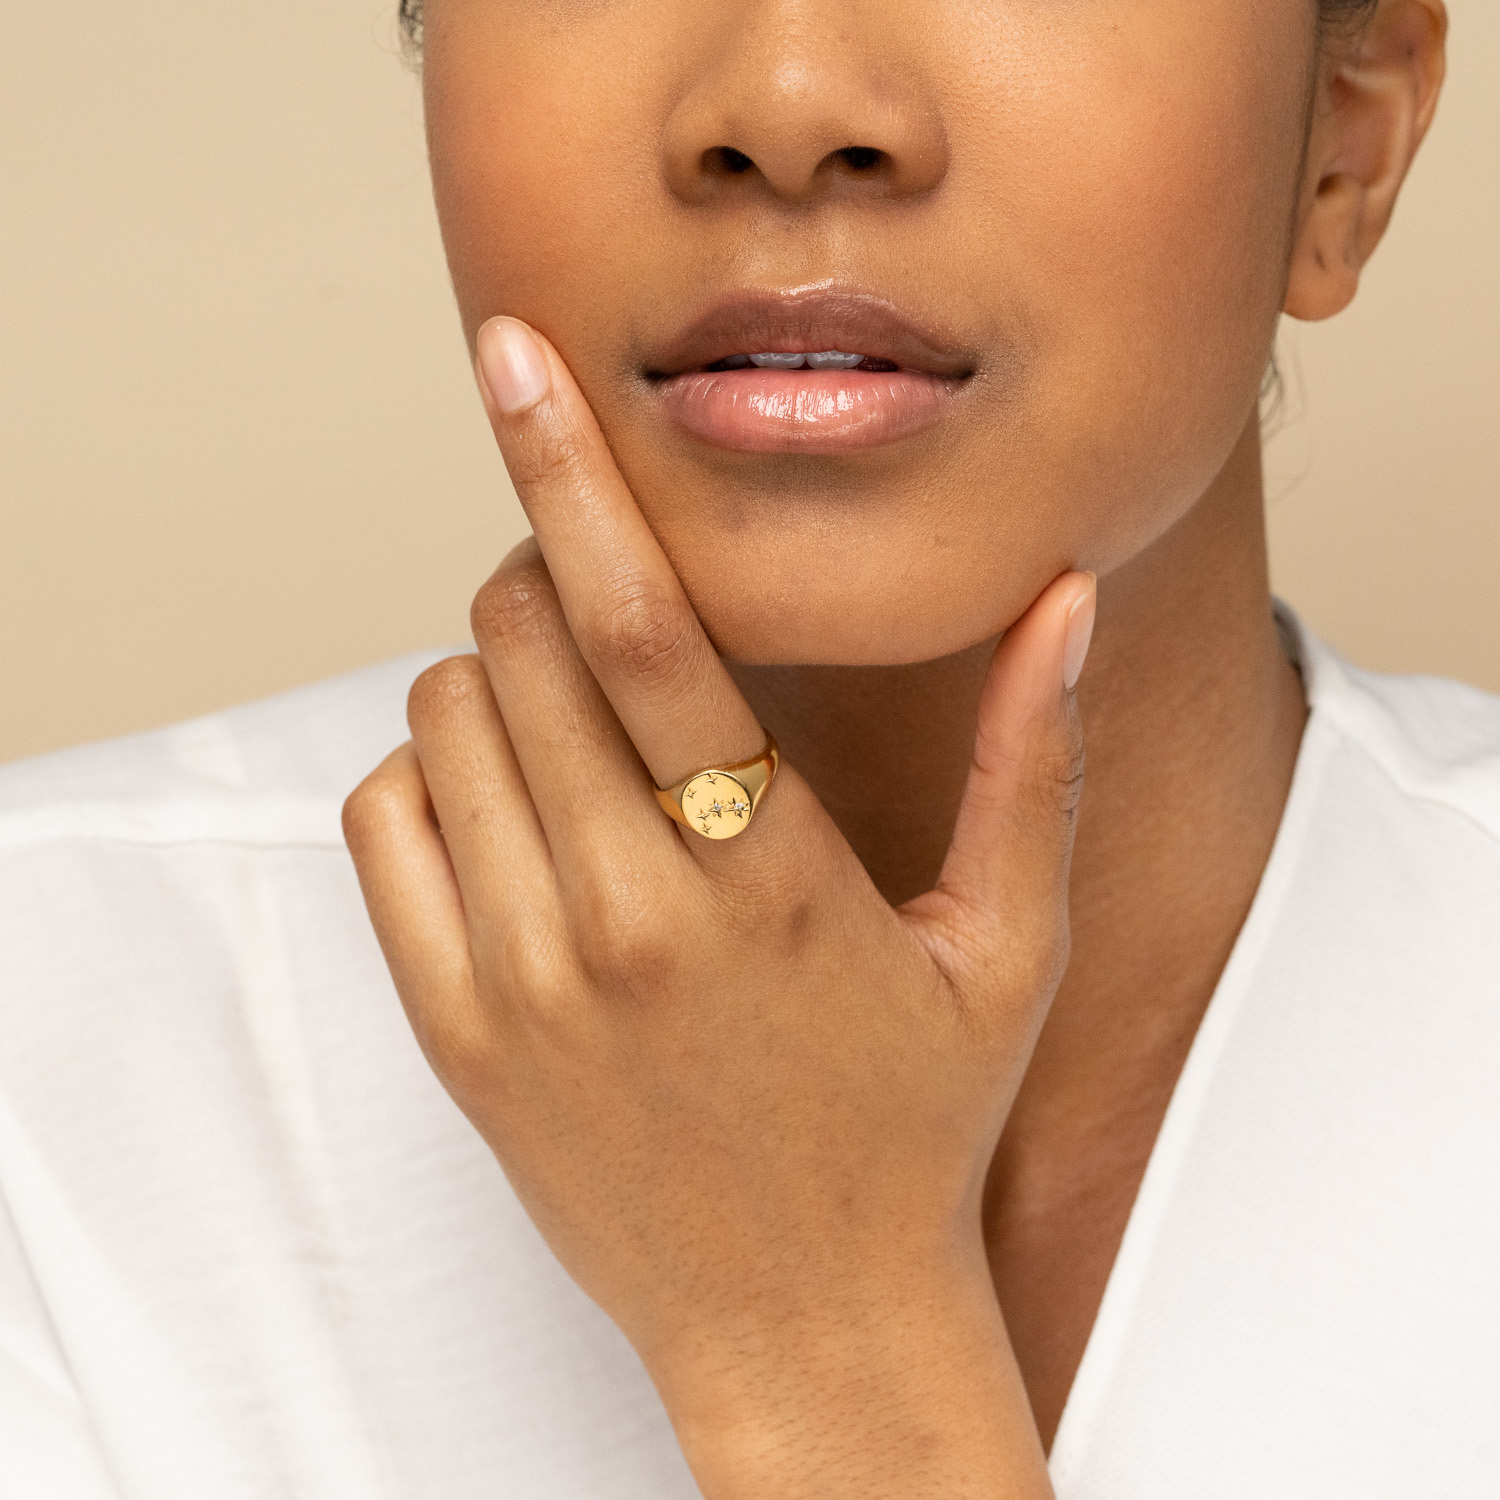 Mejuri - Leo Ring / $69The zodiac reinvented, totally cool and actually minimal!